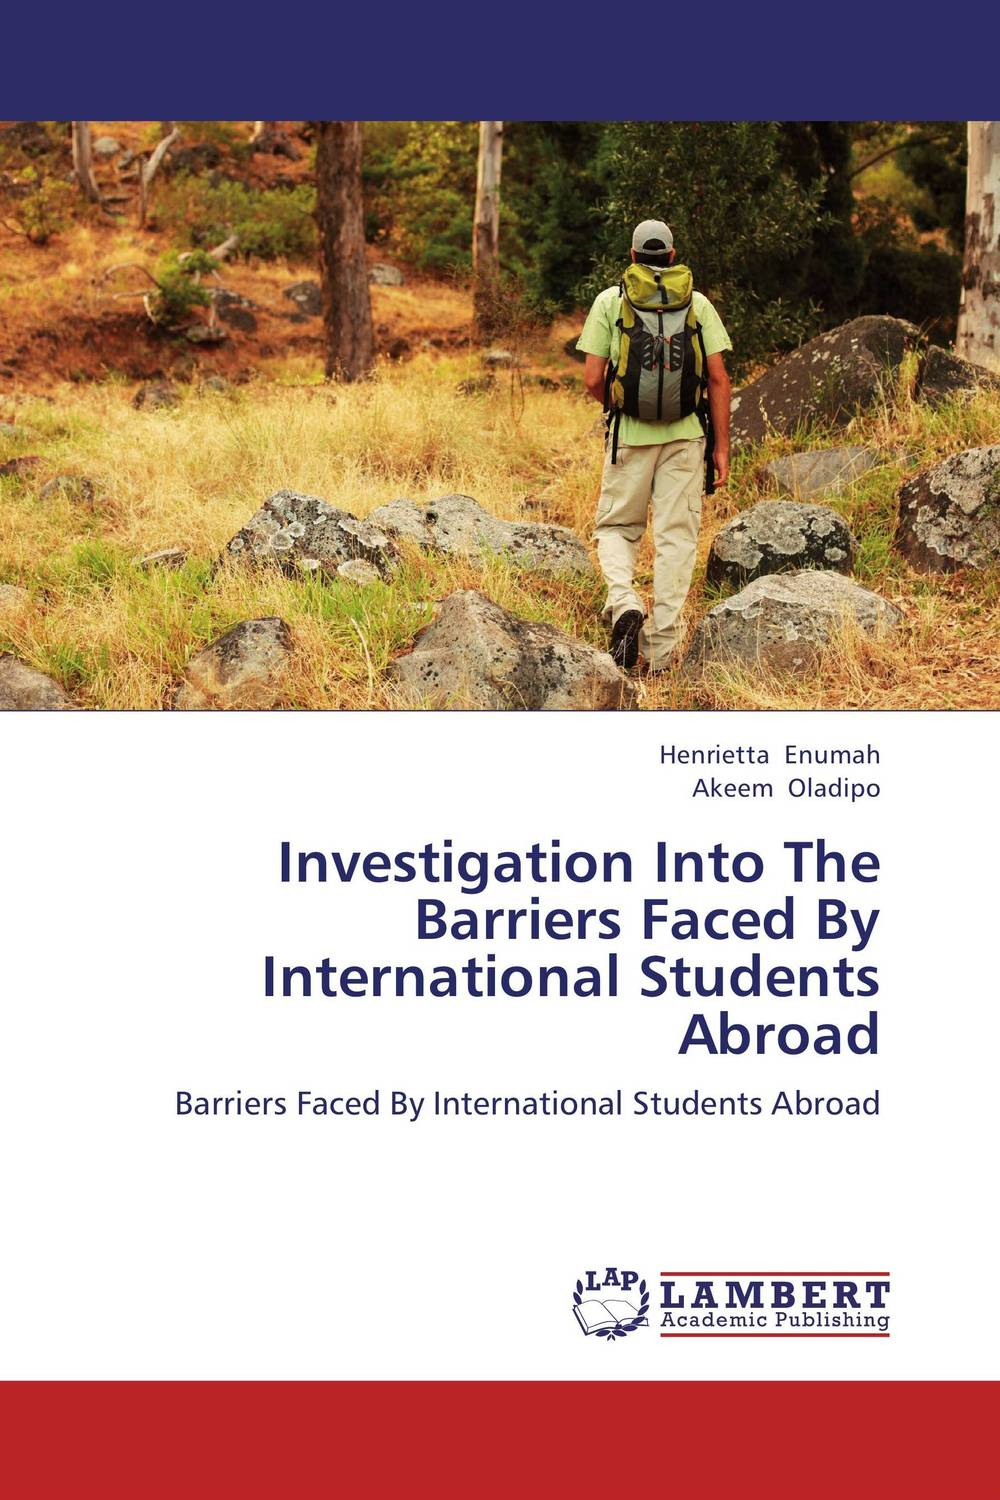 Investigation Into The Barriers Faced By International Students Abroad